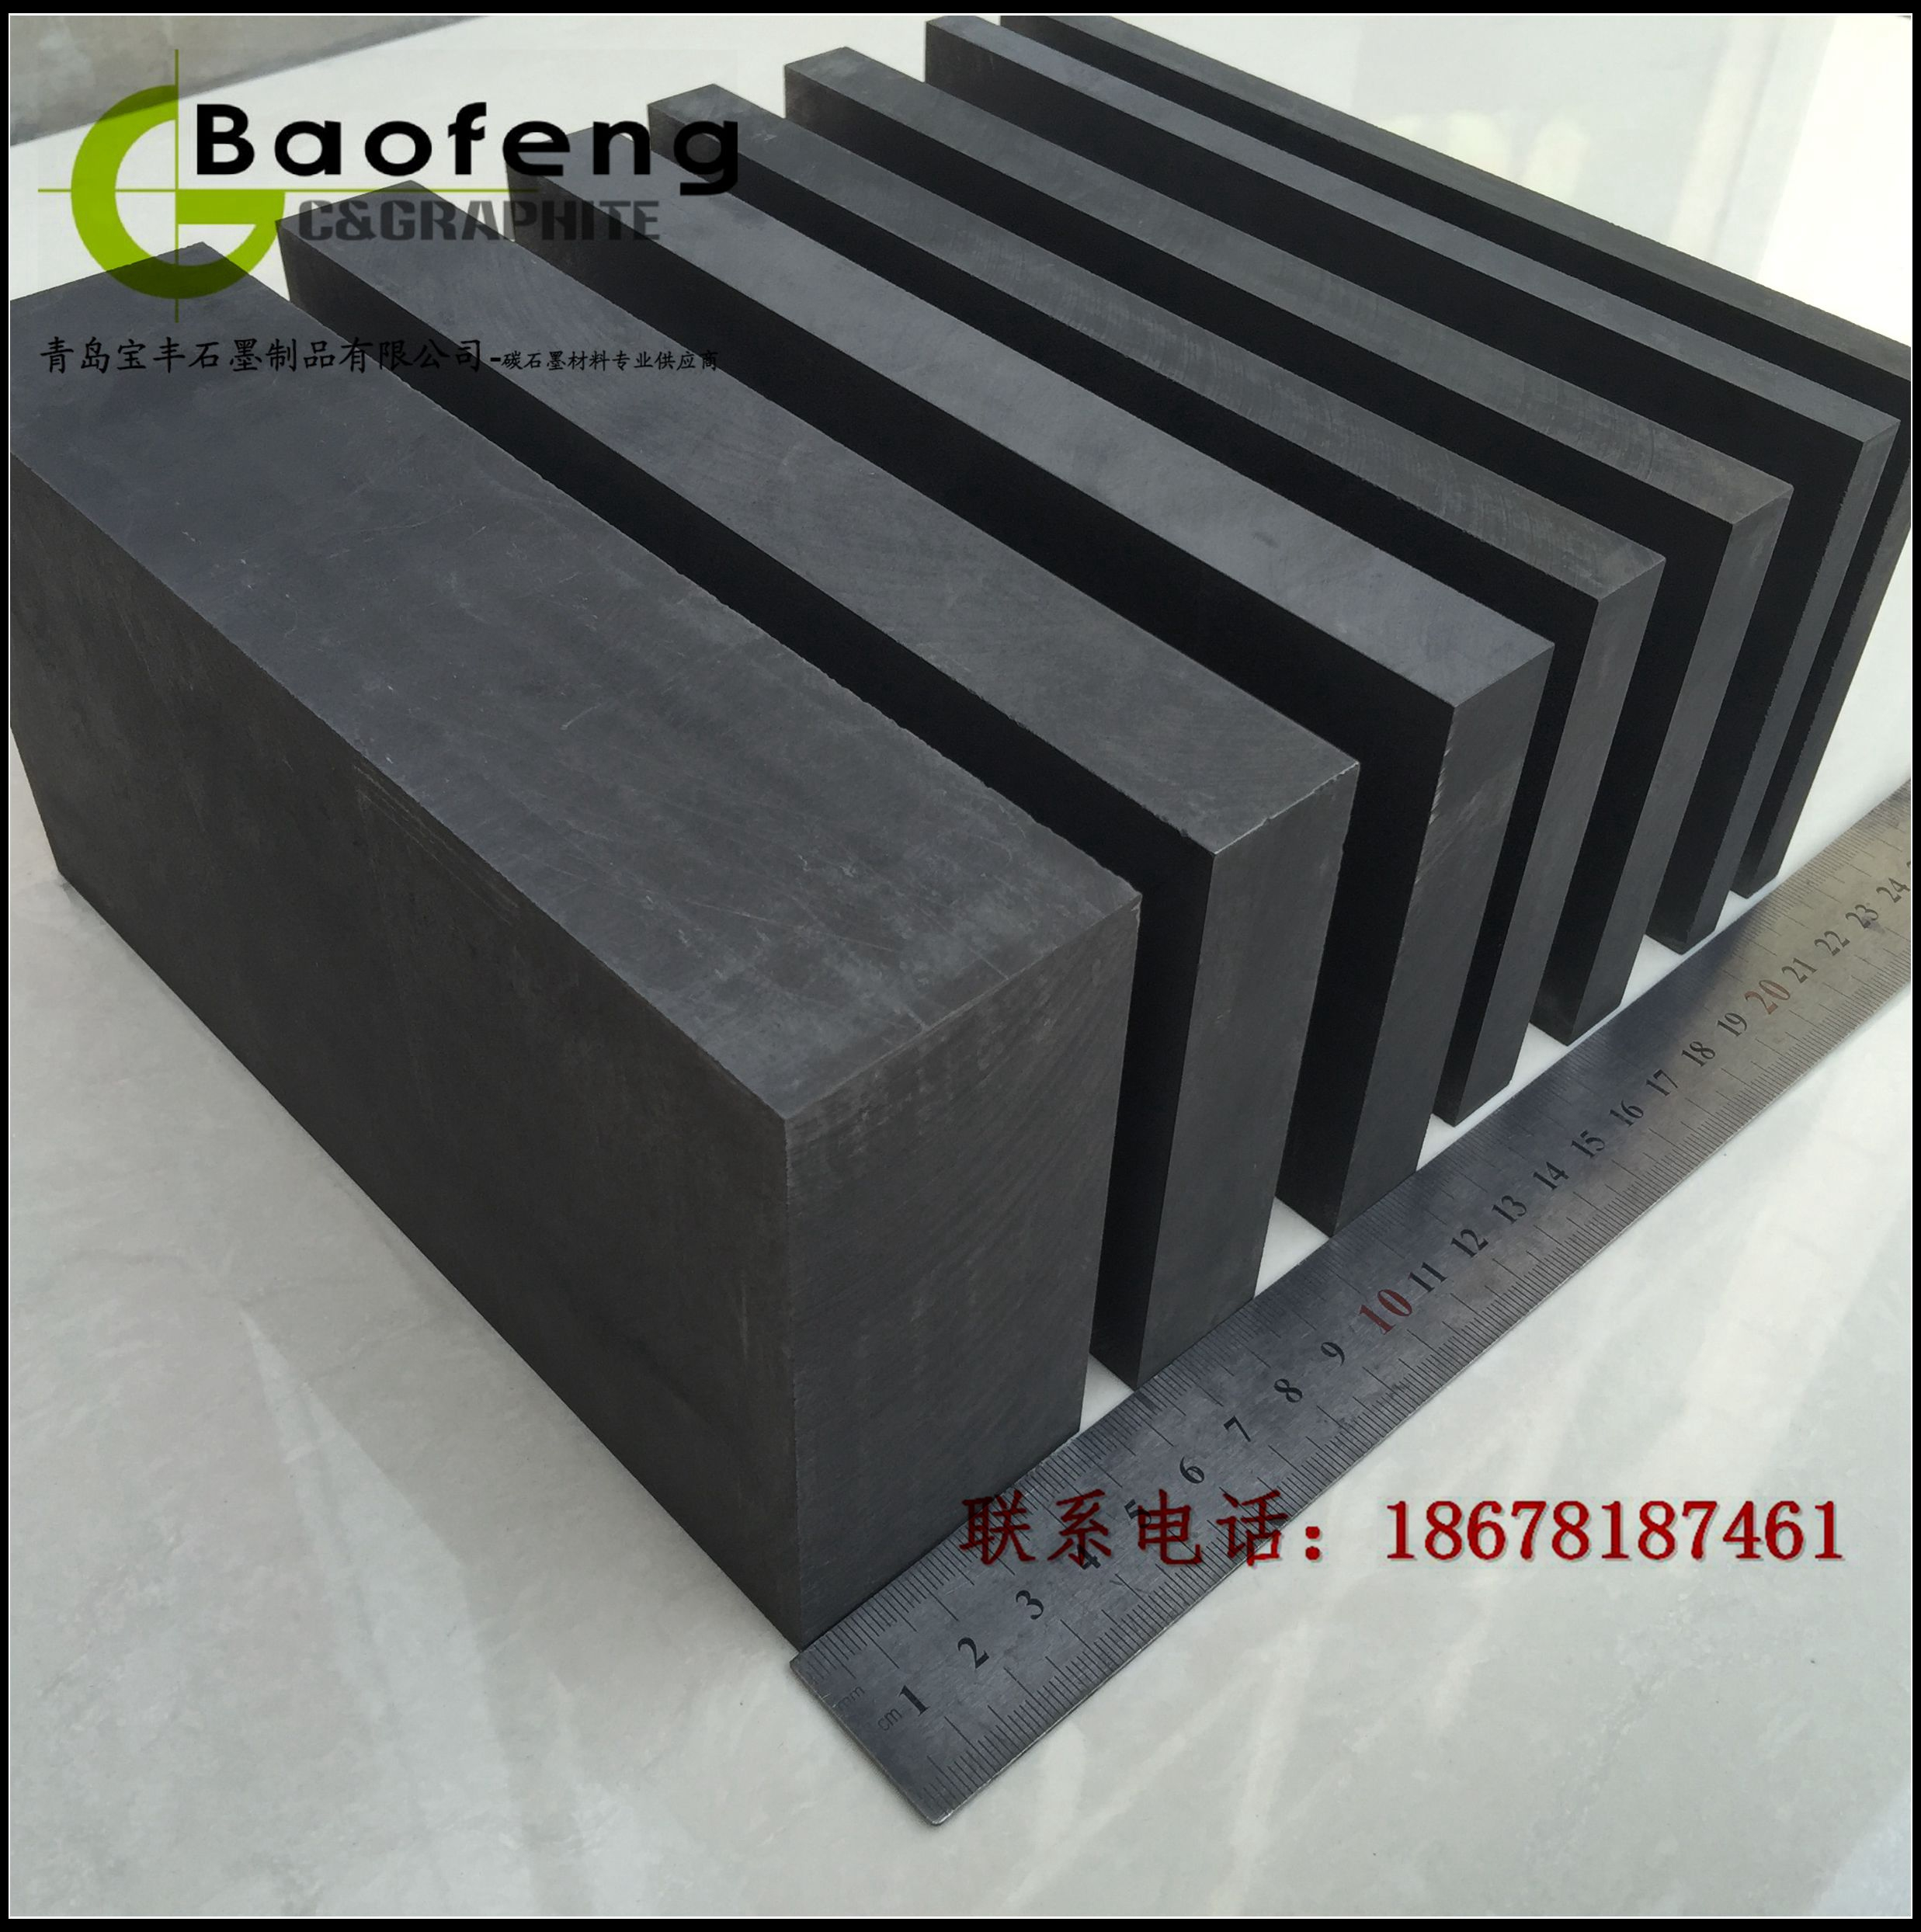 Graphite block graphite plate high purity three high EDM graphite high  temperature fine particles six milling Qingdao Baofeng